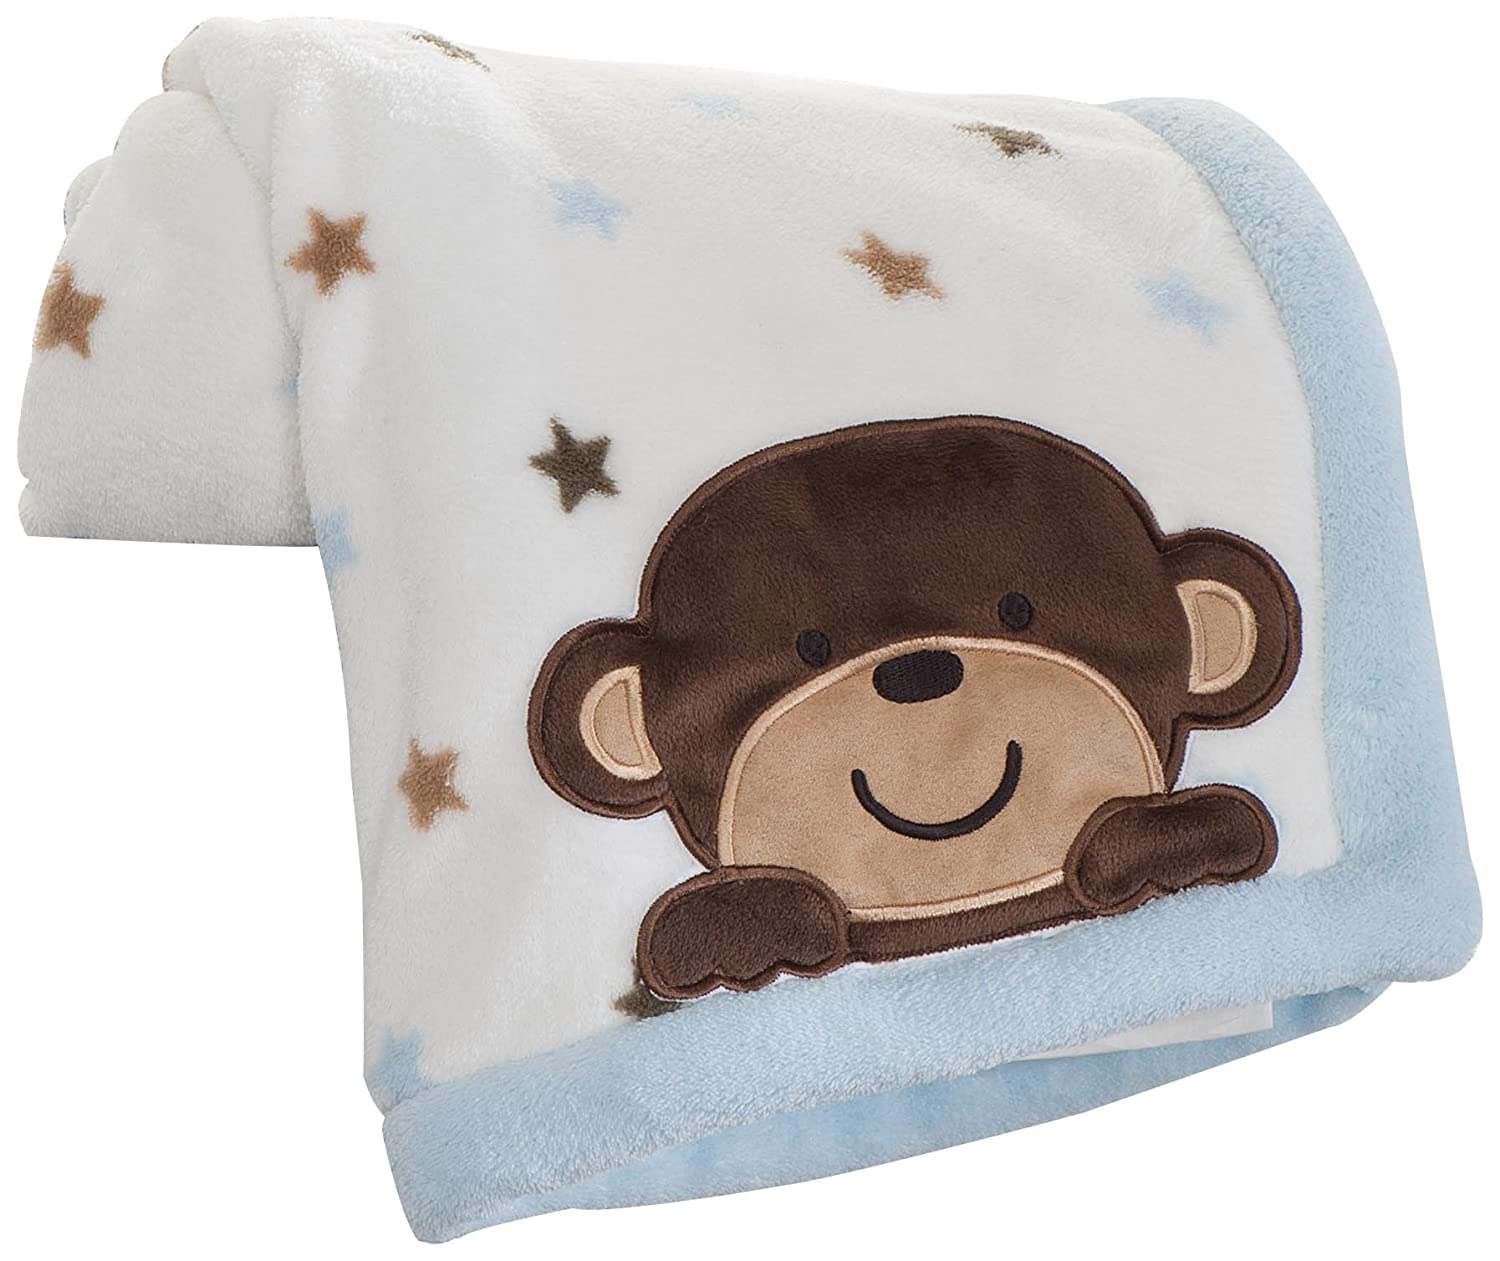 Carters Monkey Rockstar Baby Bedding Baby Bedding And